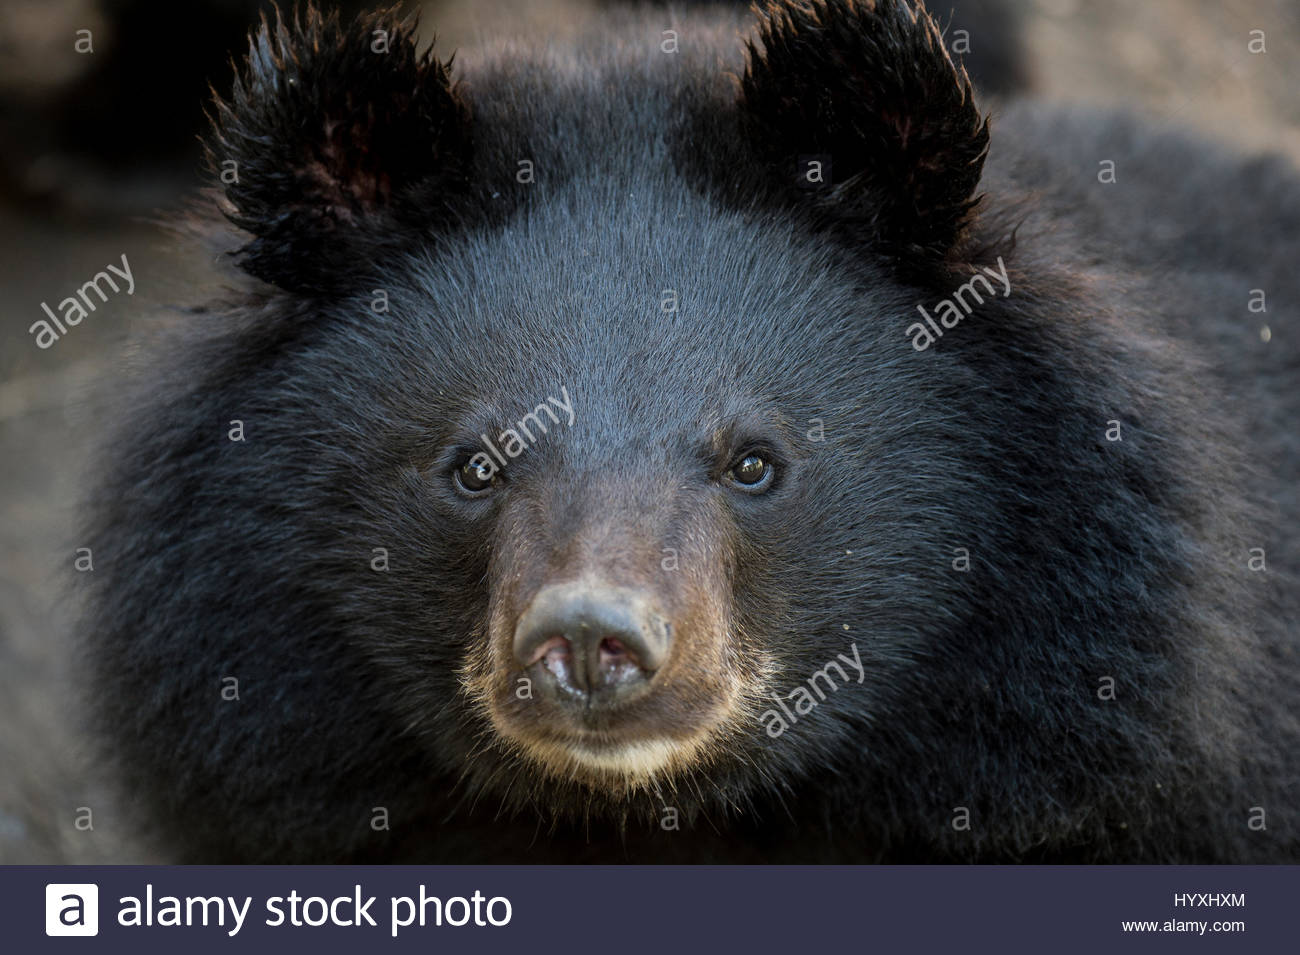 Close up portrait of a rescued Asiatic black bear. - Stock Image